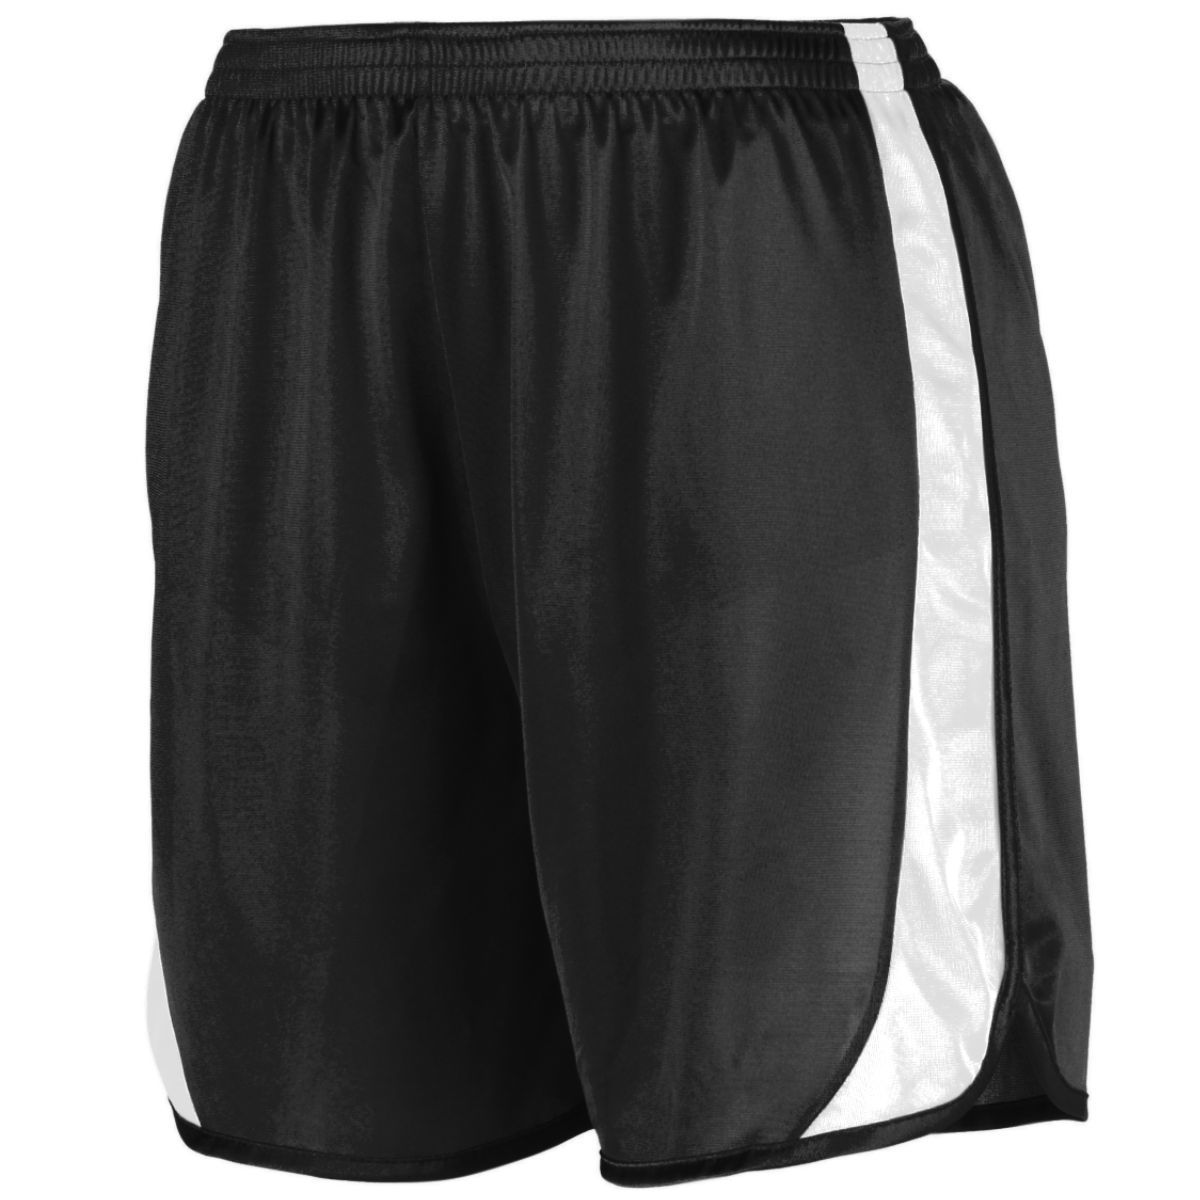 Youth Wicking Track Shorts With Side Insert - BLACK/WHITE